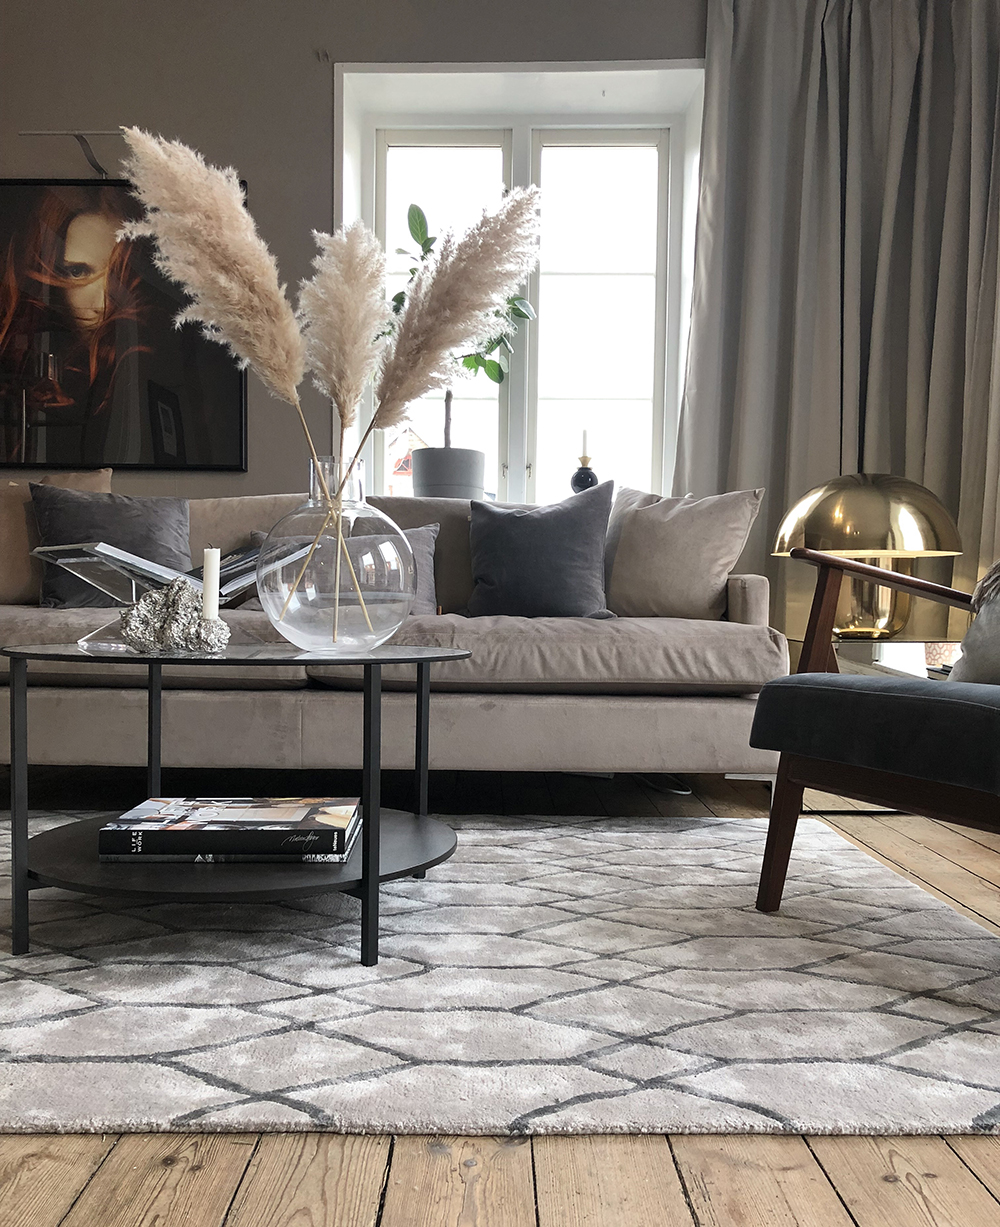 Guide style advice choosing a sofa the placement fabric and colors